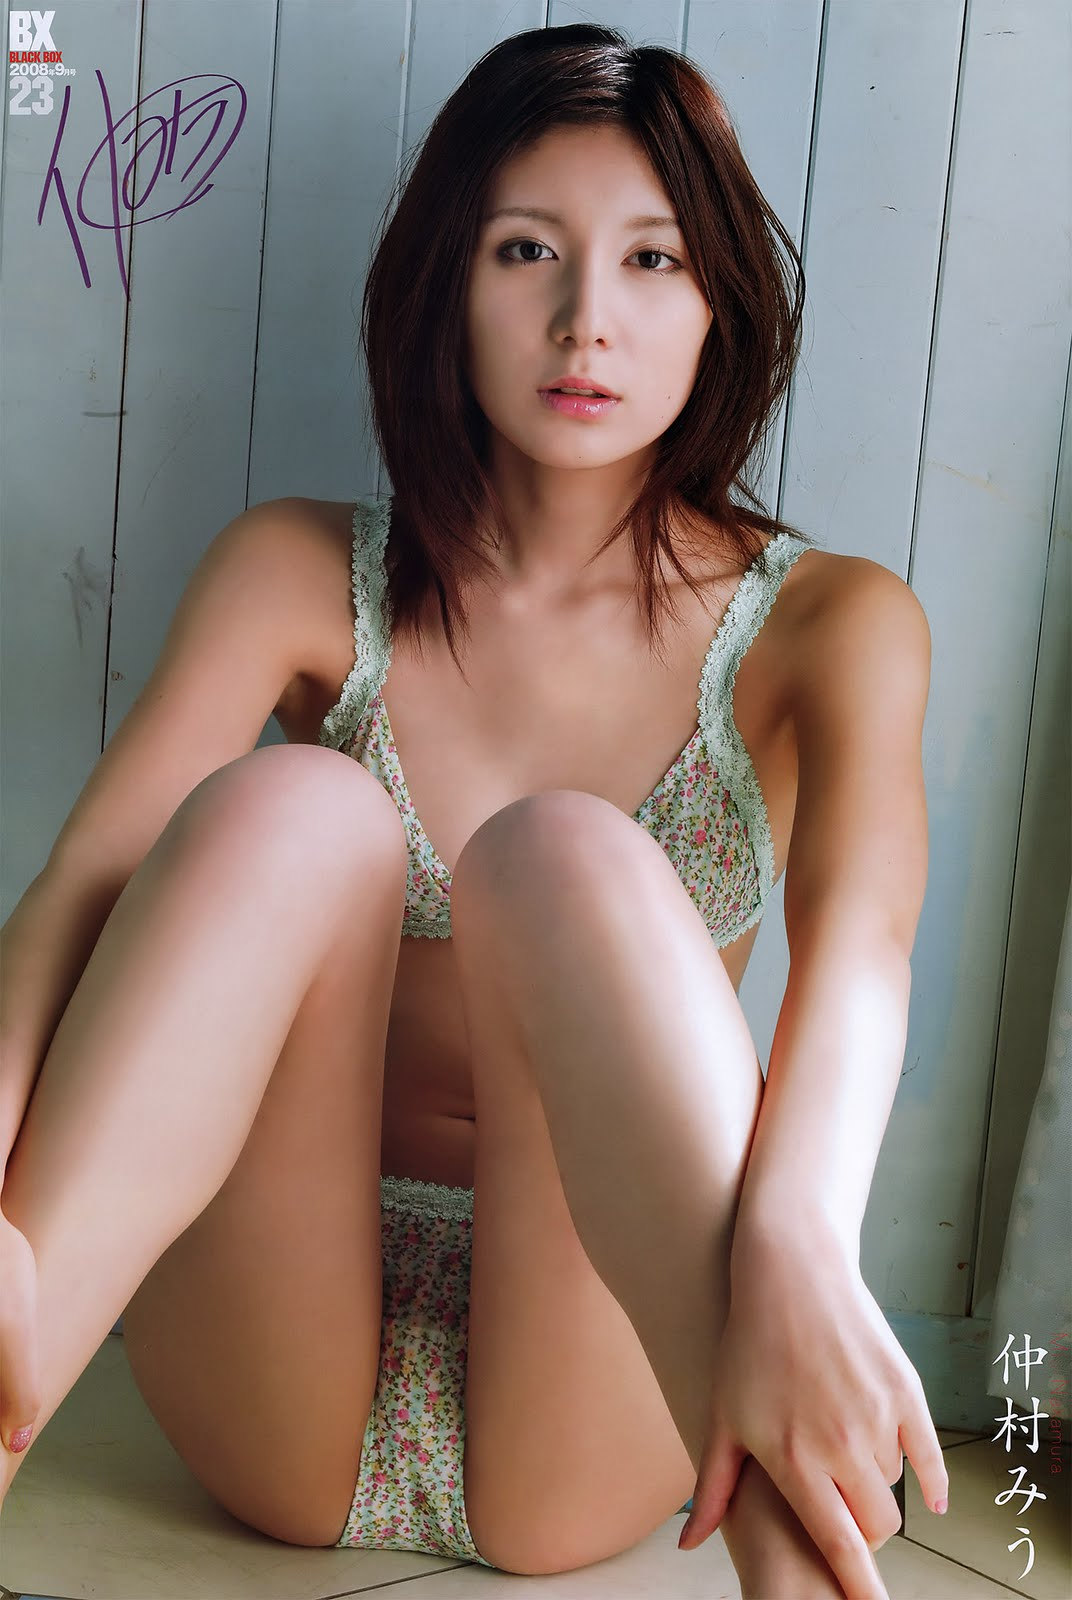 Pretty Girl Wallpaper Free Download Japan Idol Miu Nakamura Cute Japanese Girl Photo Gallery